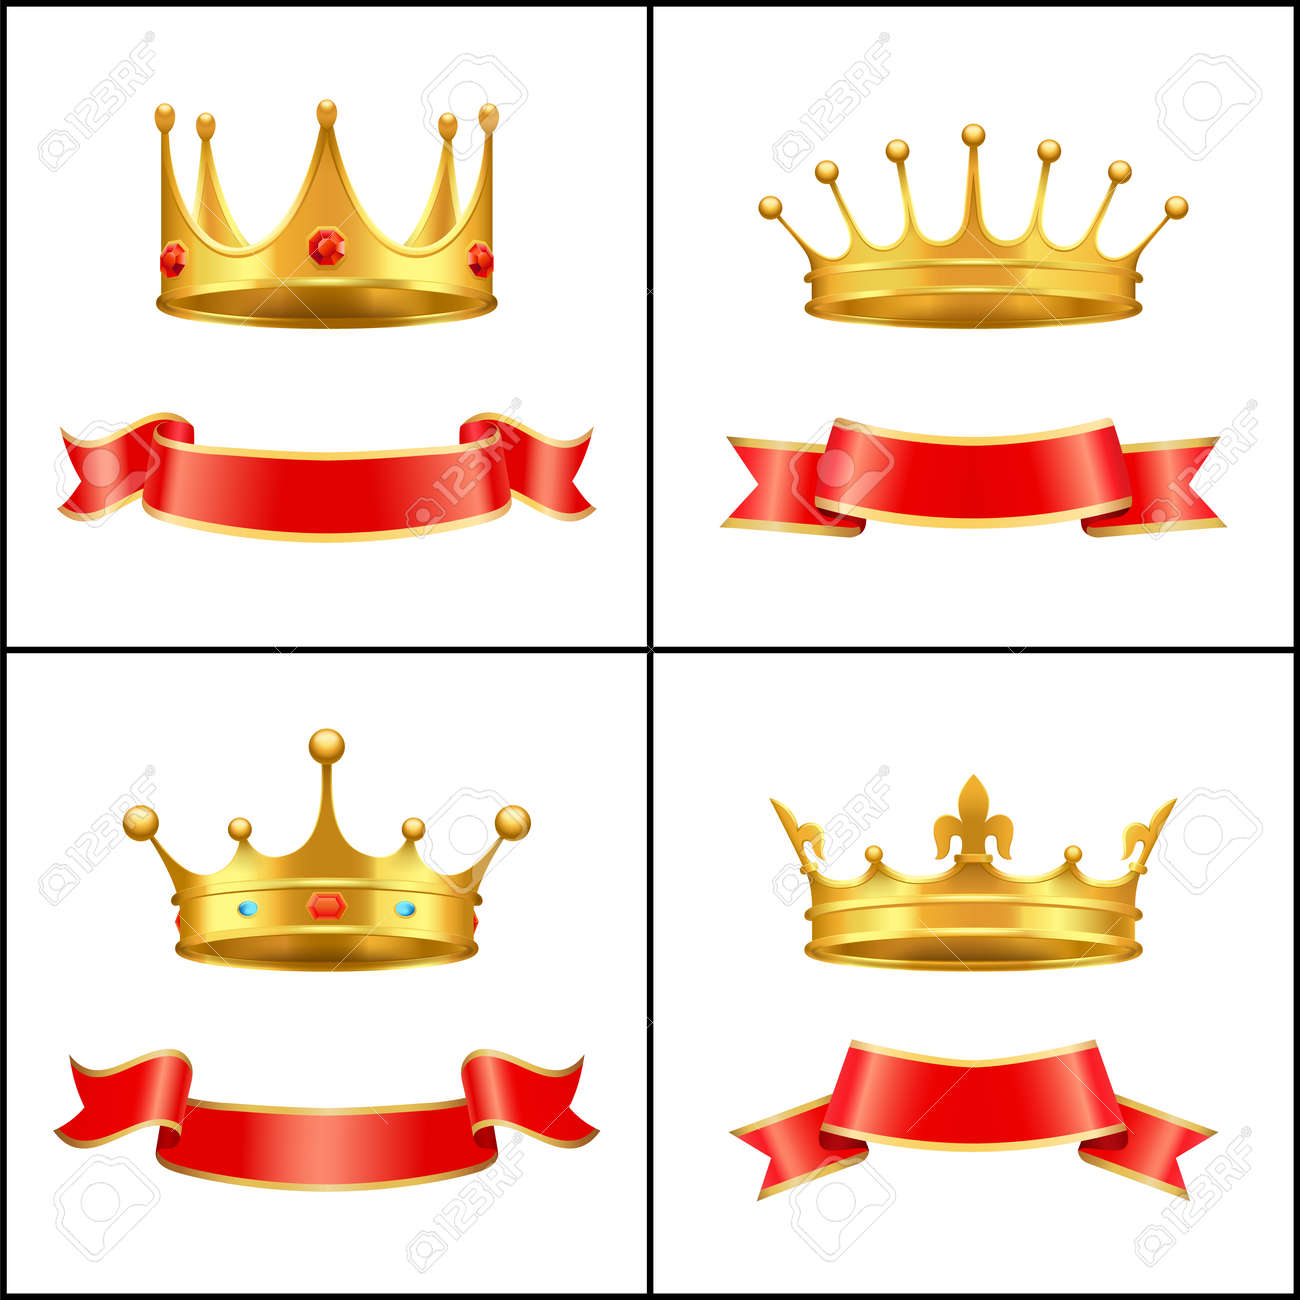 Crown Regal Power and Banner Vector Illustration - 111414709